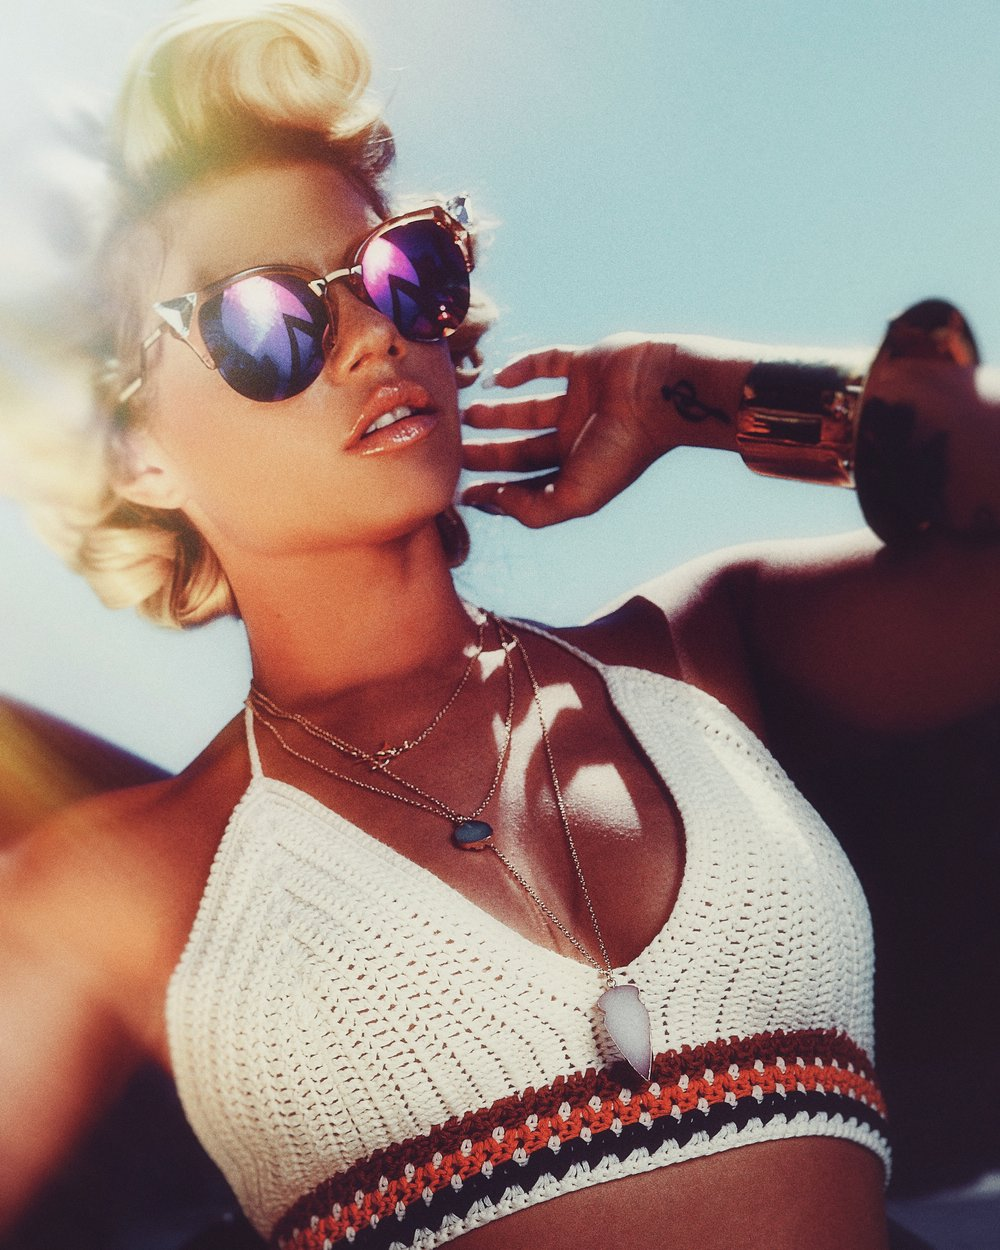 Chanel-West-Coast-Hot-Summer-02-Glasses.jpeg